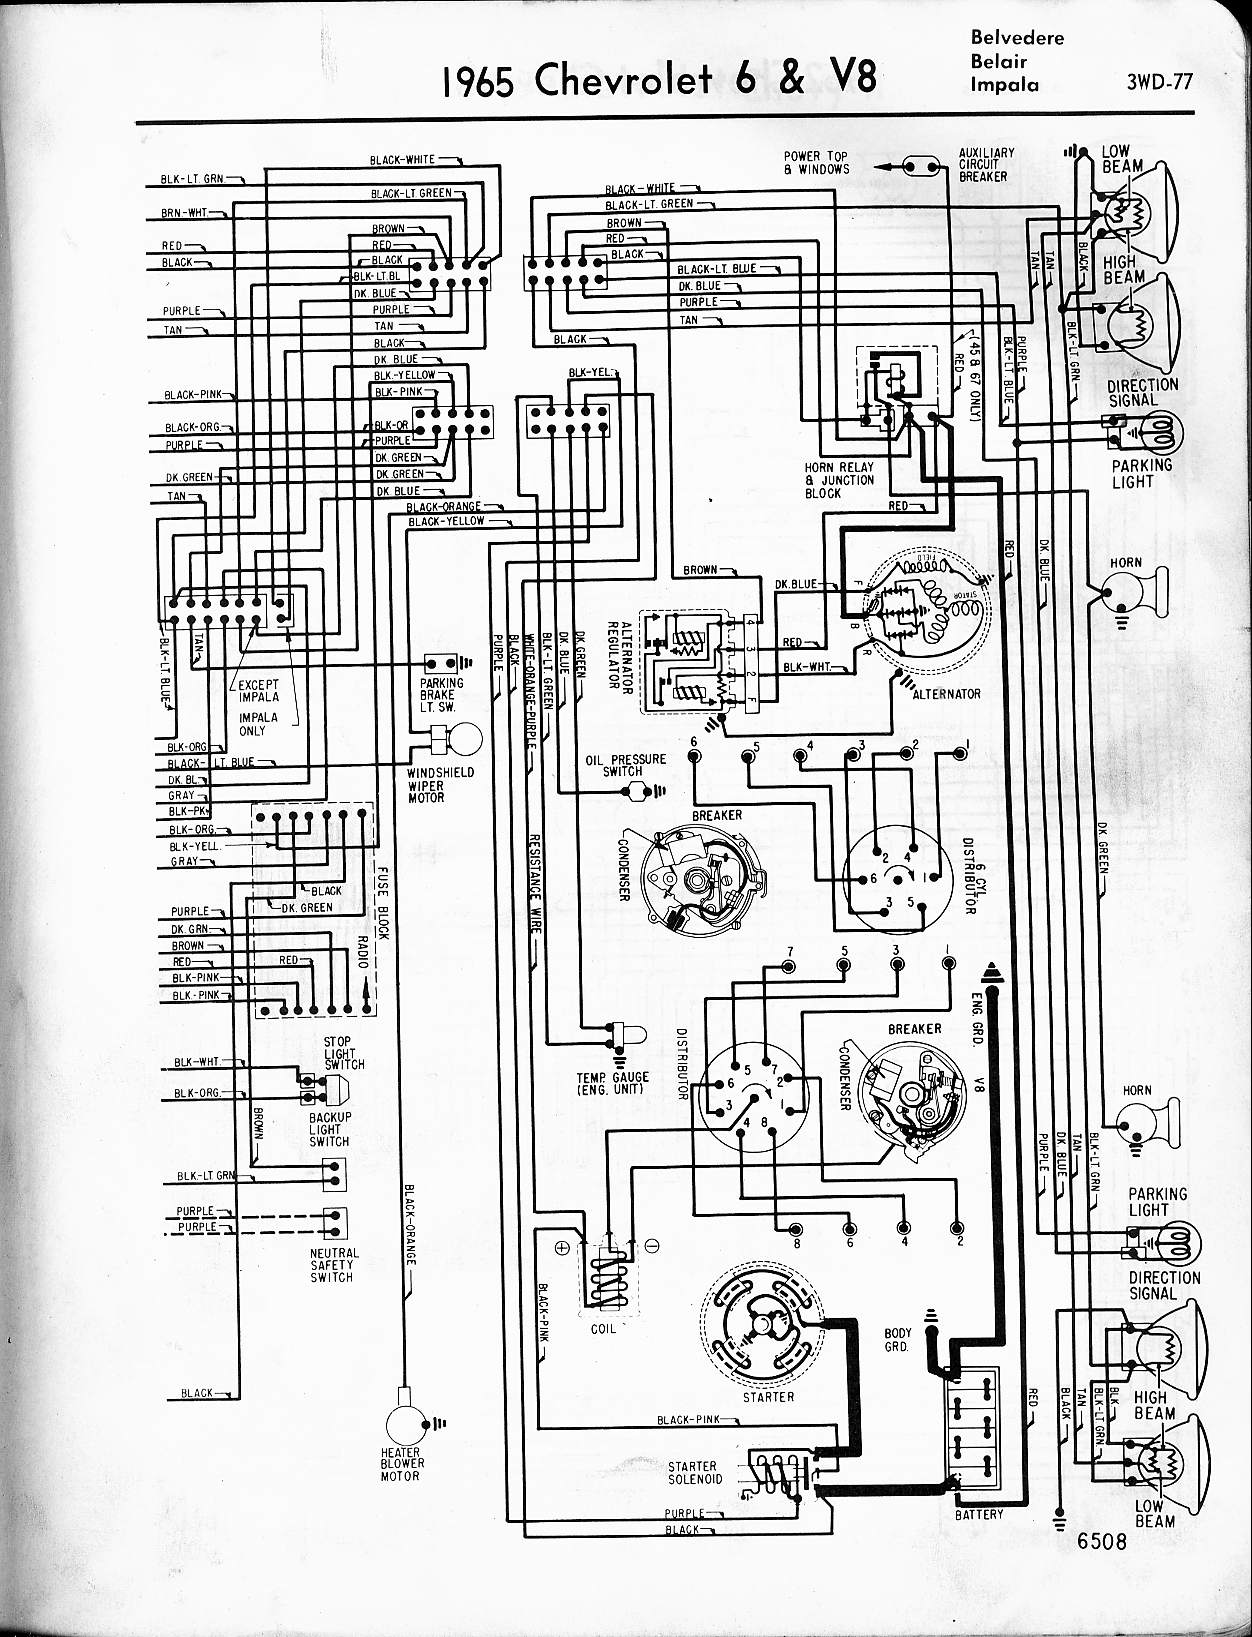 printable wiring diagram 65 chevelle diy enthusiasts wiring diagrams u2022 rh broadwaycomputers us